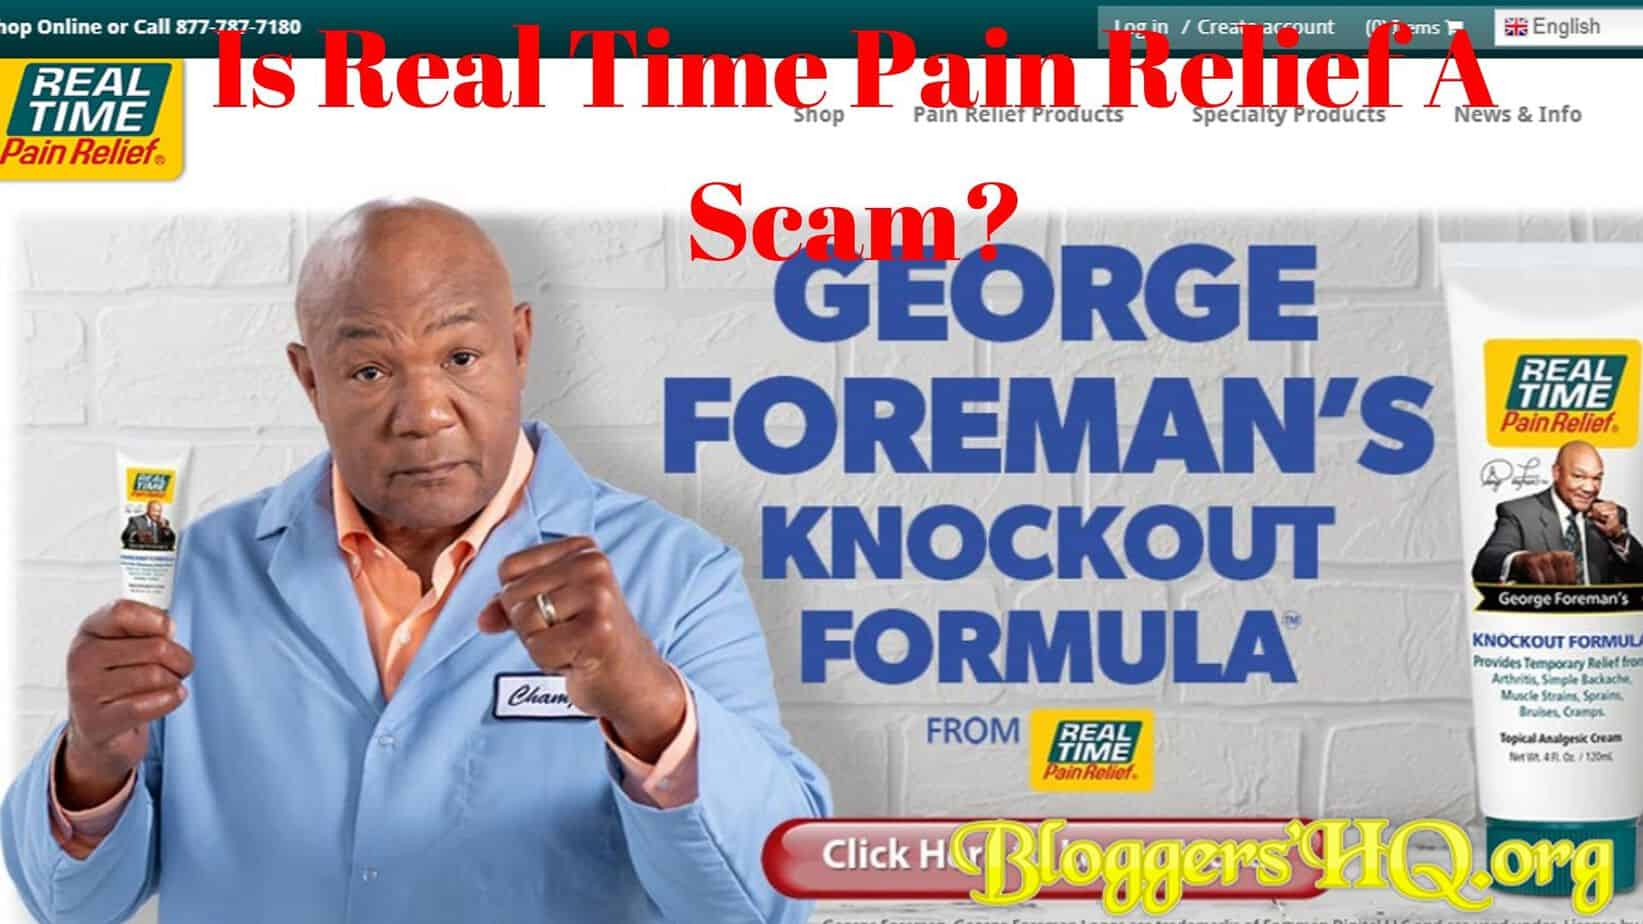 Is Real Time Pain Relief A Scam